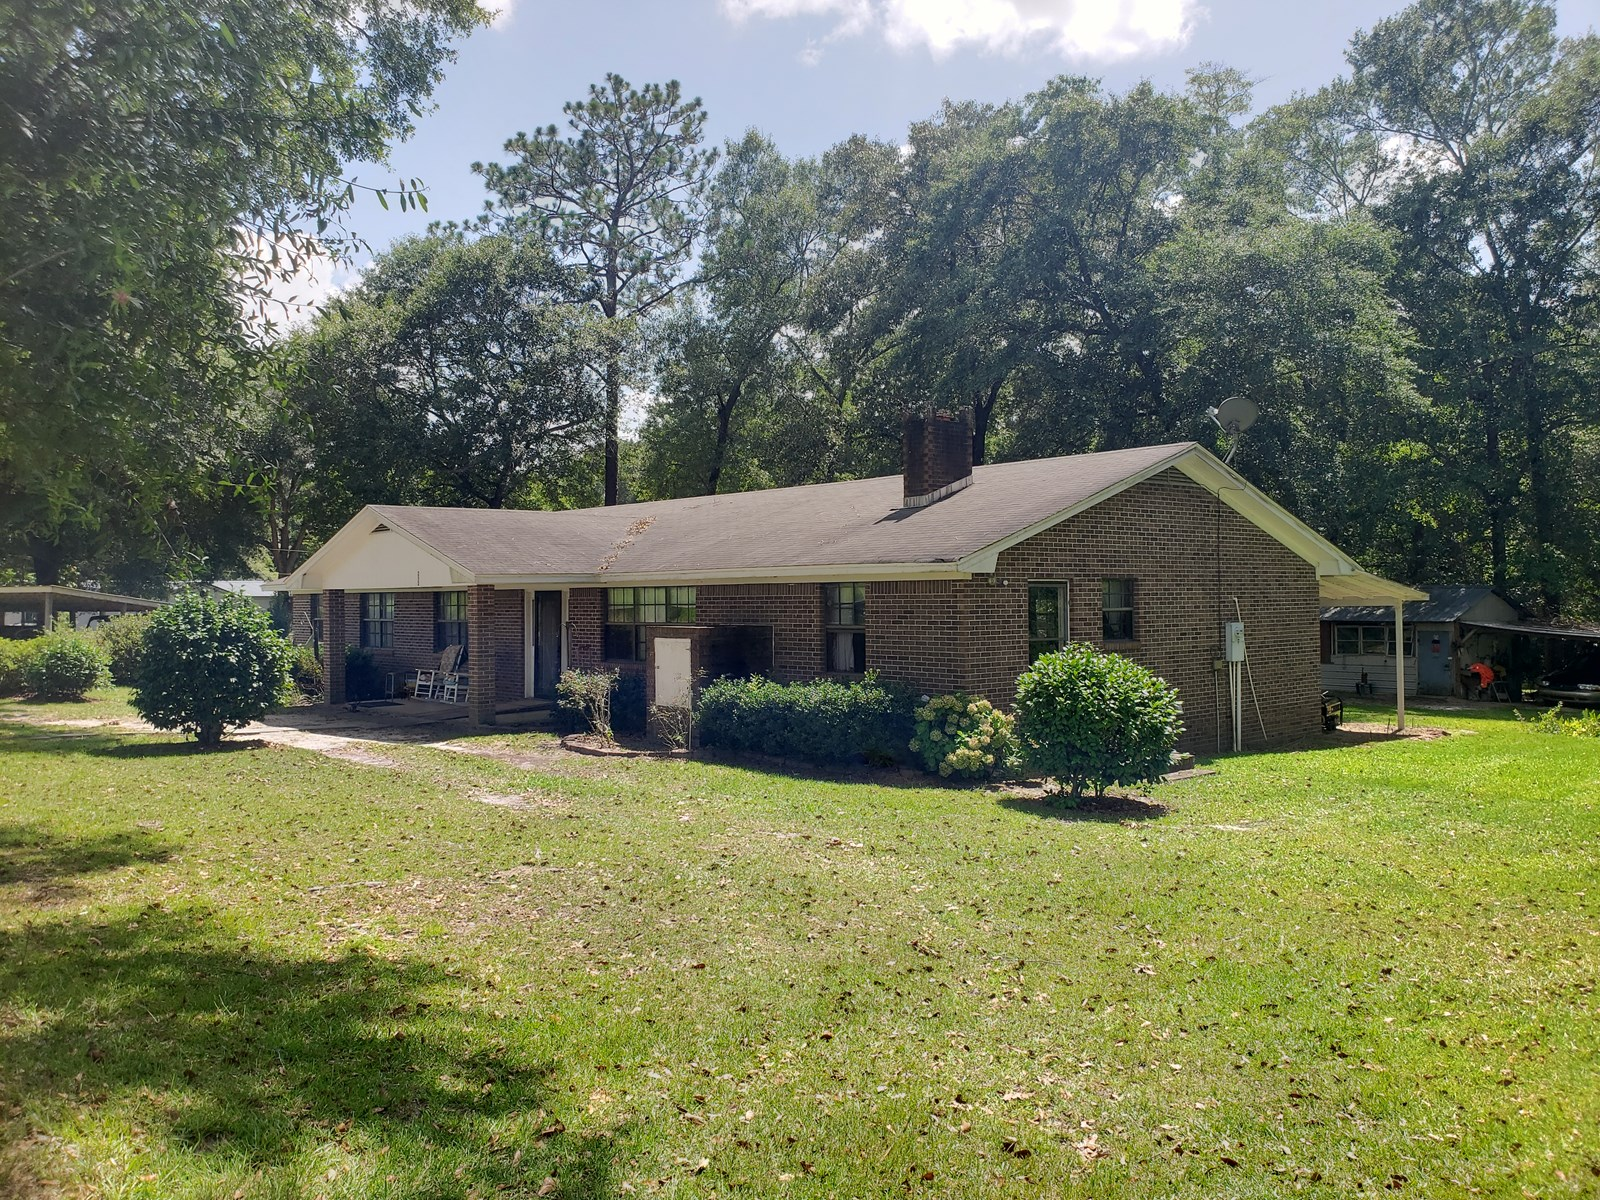 4B/3B Brick Home for sale on 12 Acres, Samson, Alabama